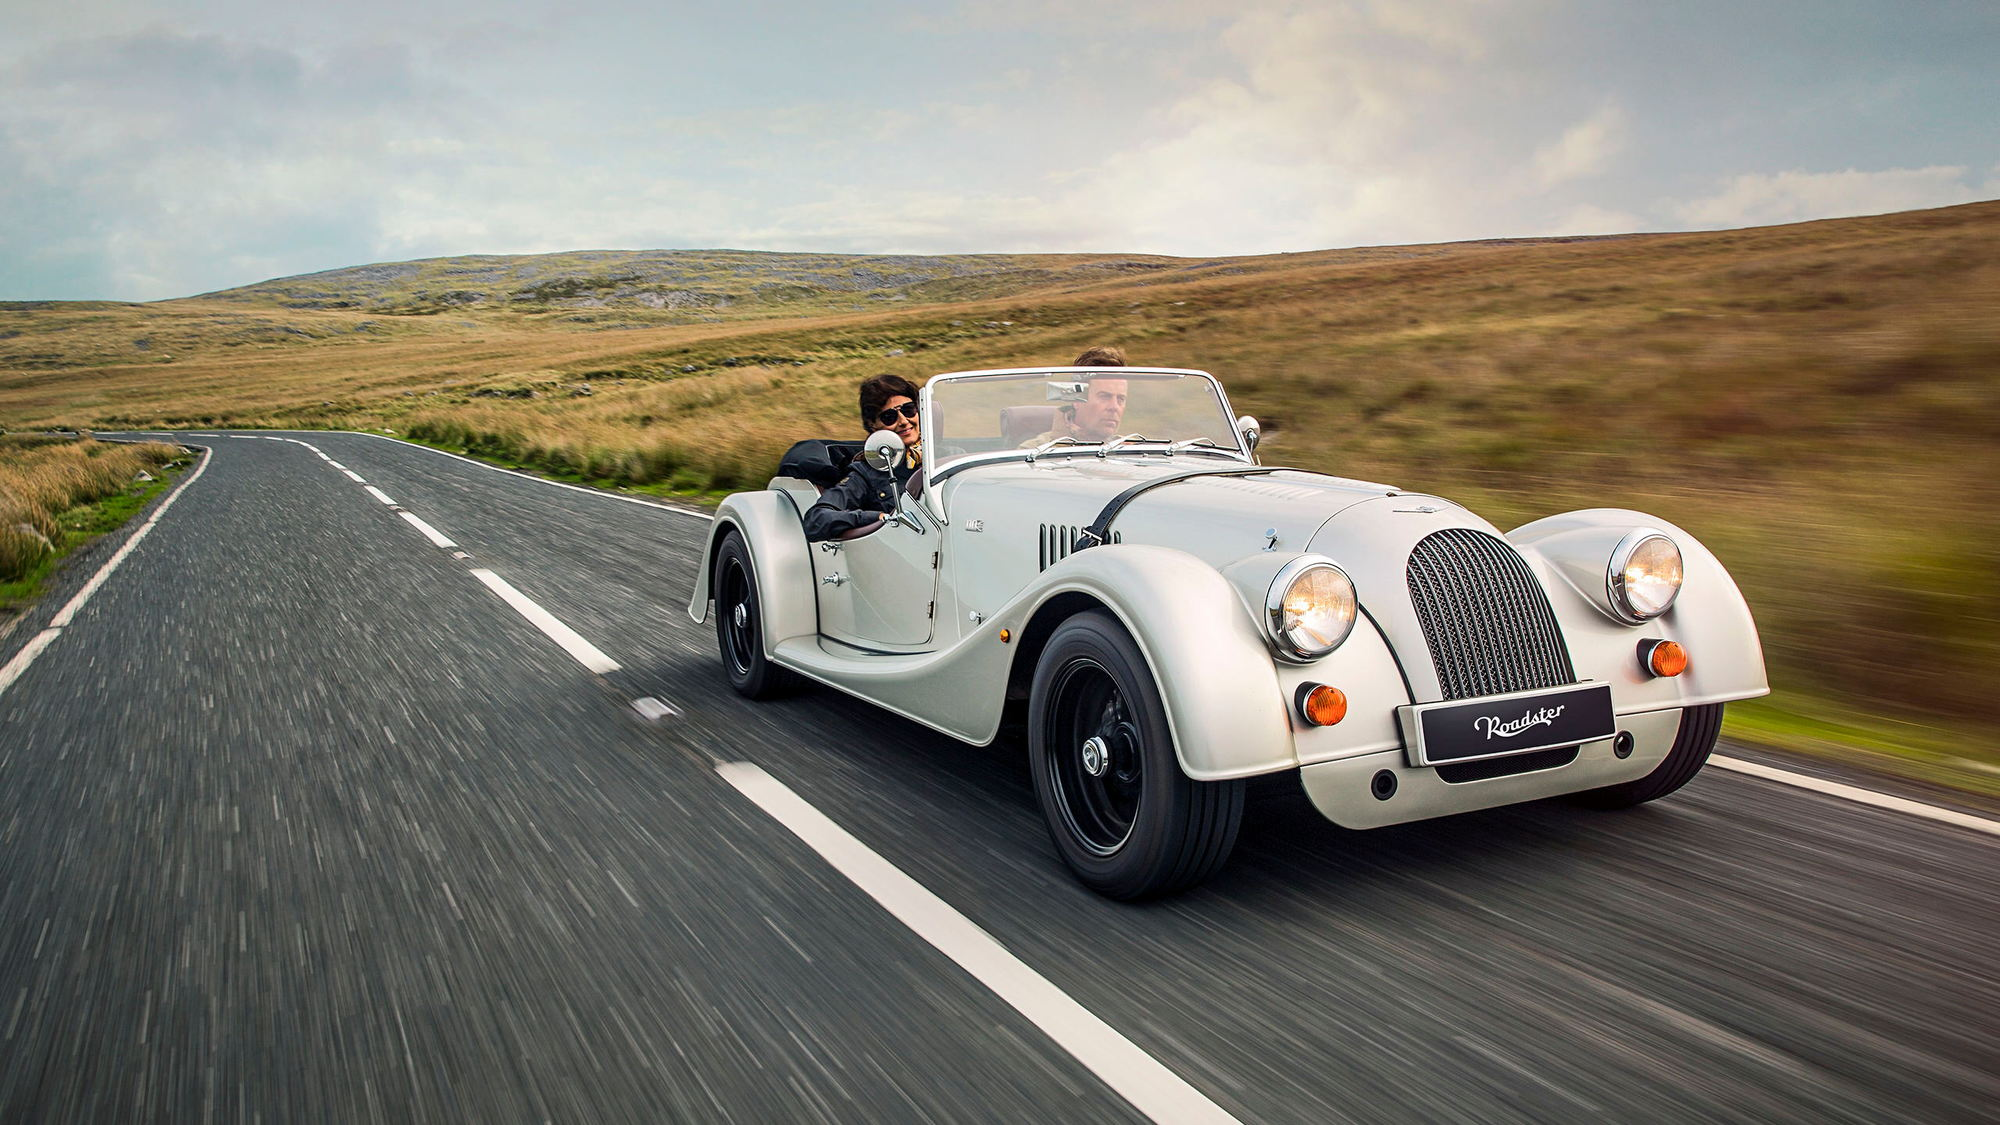 Morgan Motor Company celebrates its 110th anniversary